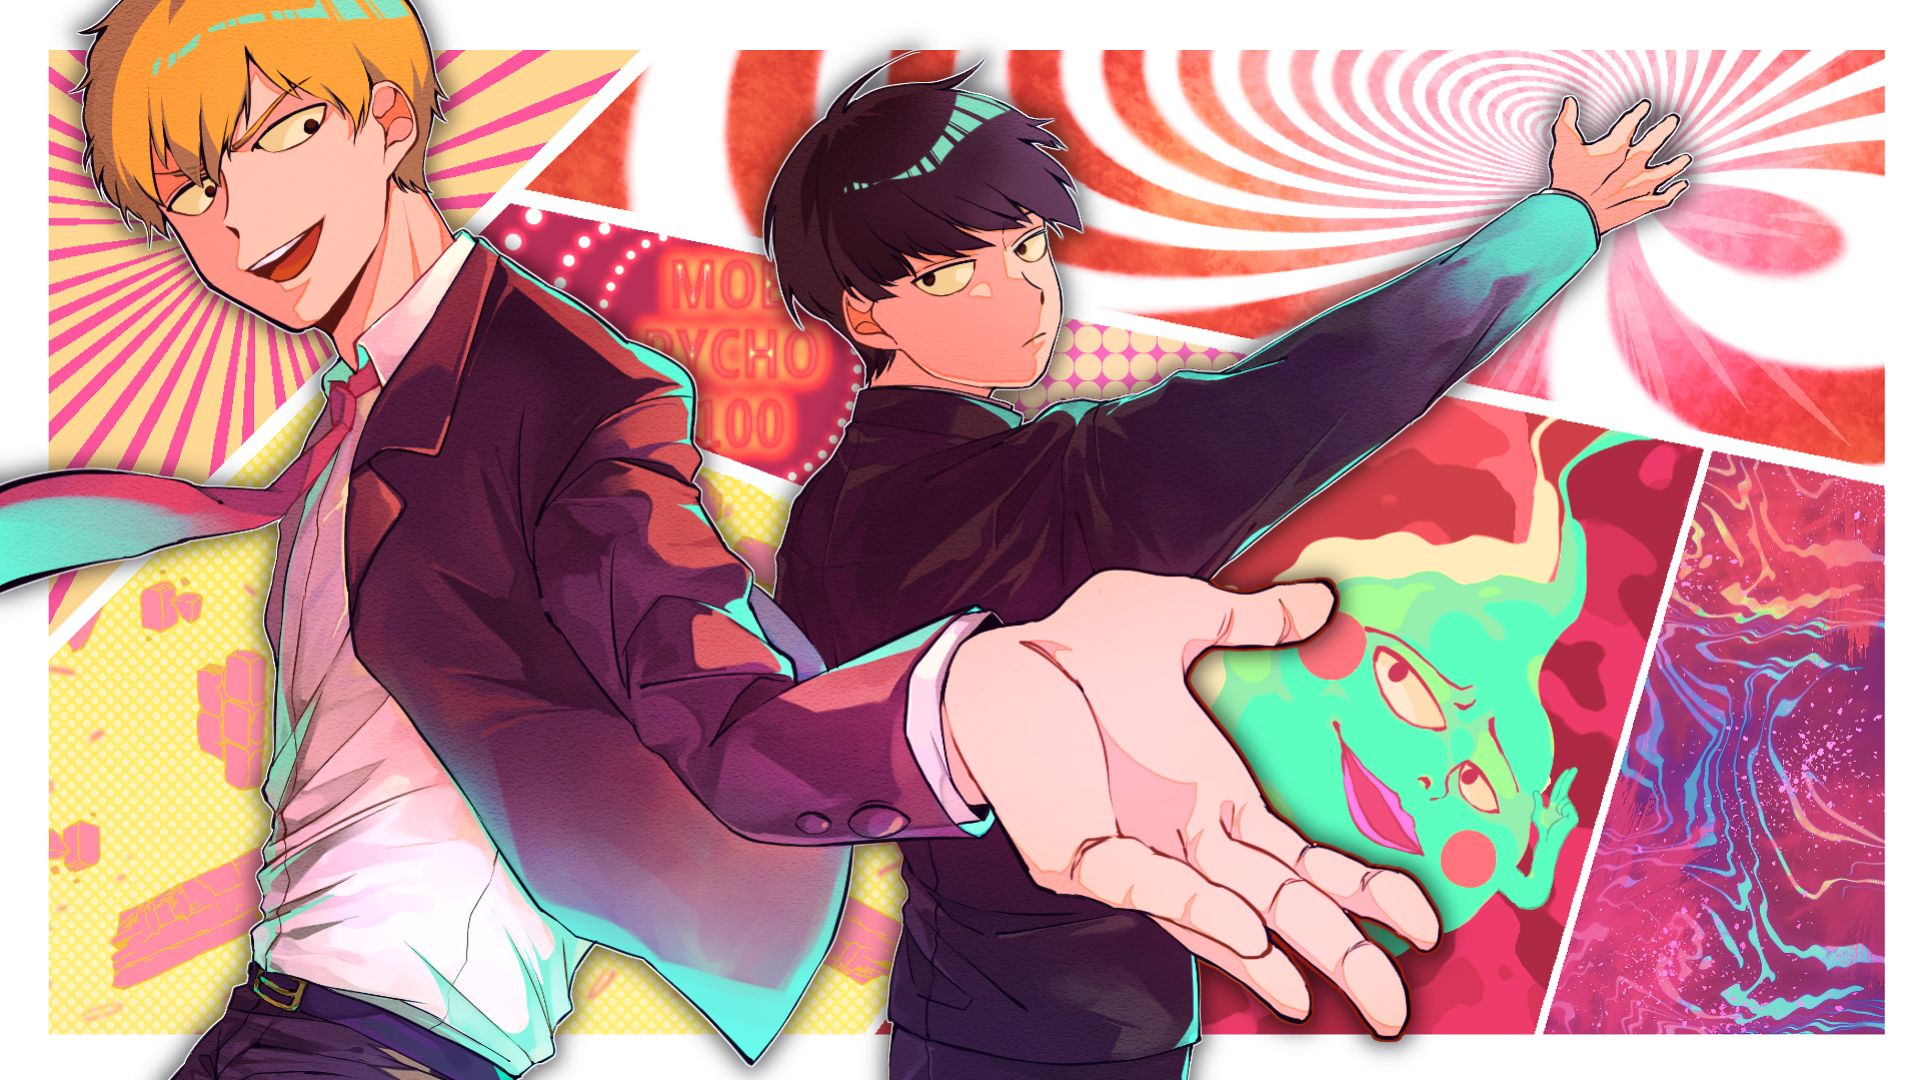 Mob Psycho 100 Wallpapers 24 Images Wallpaperboat